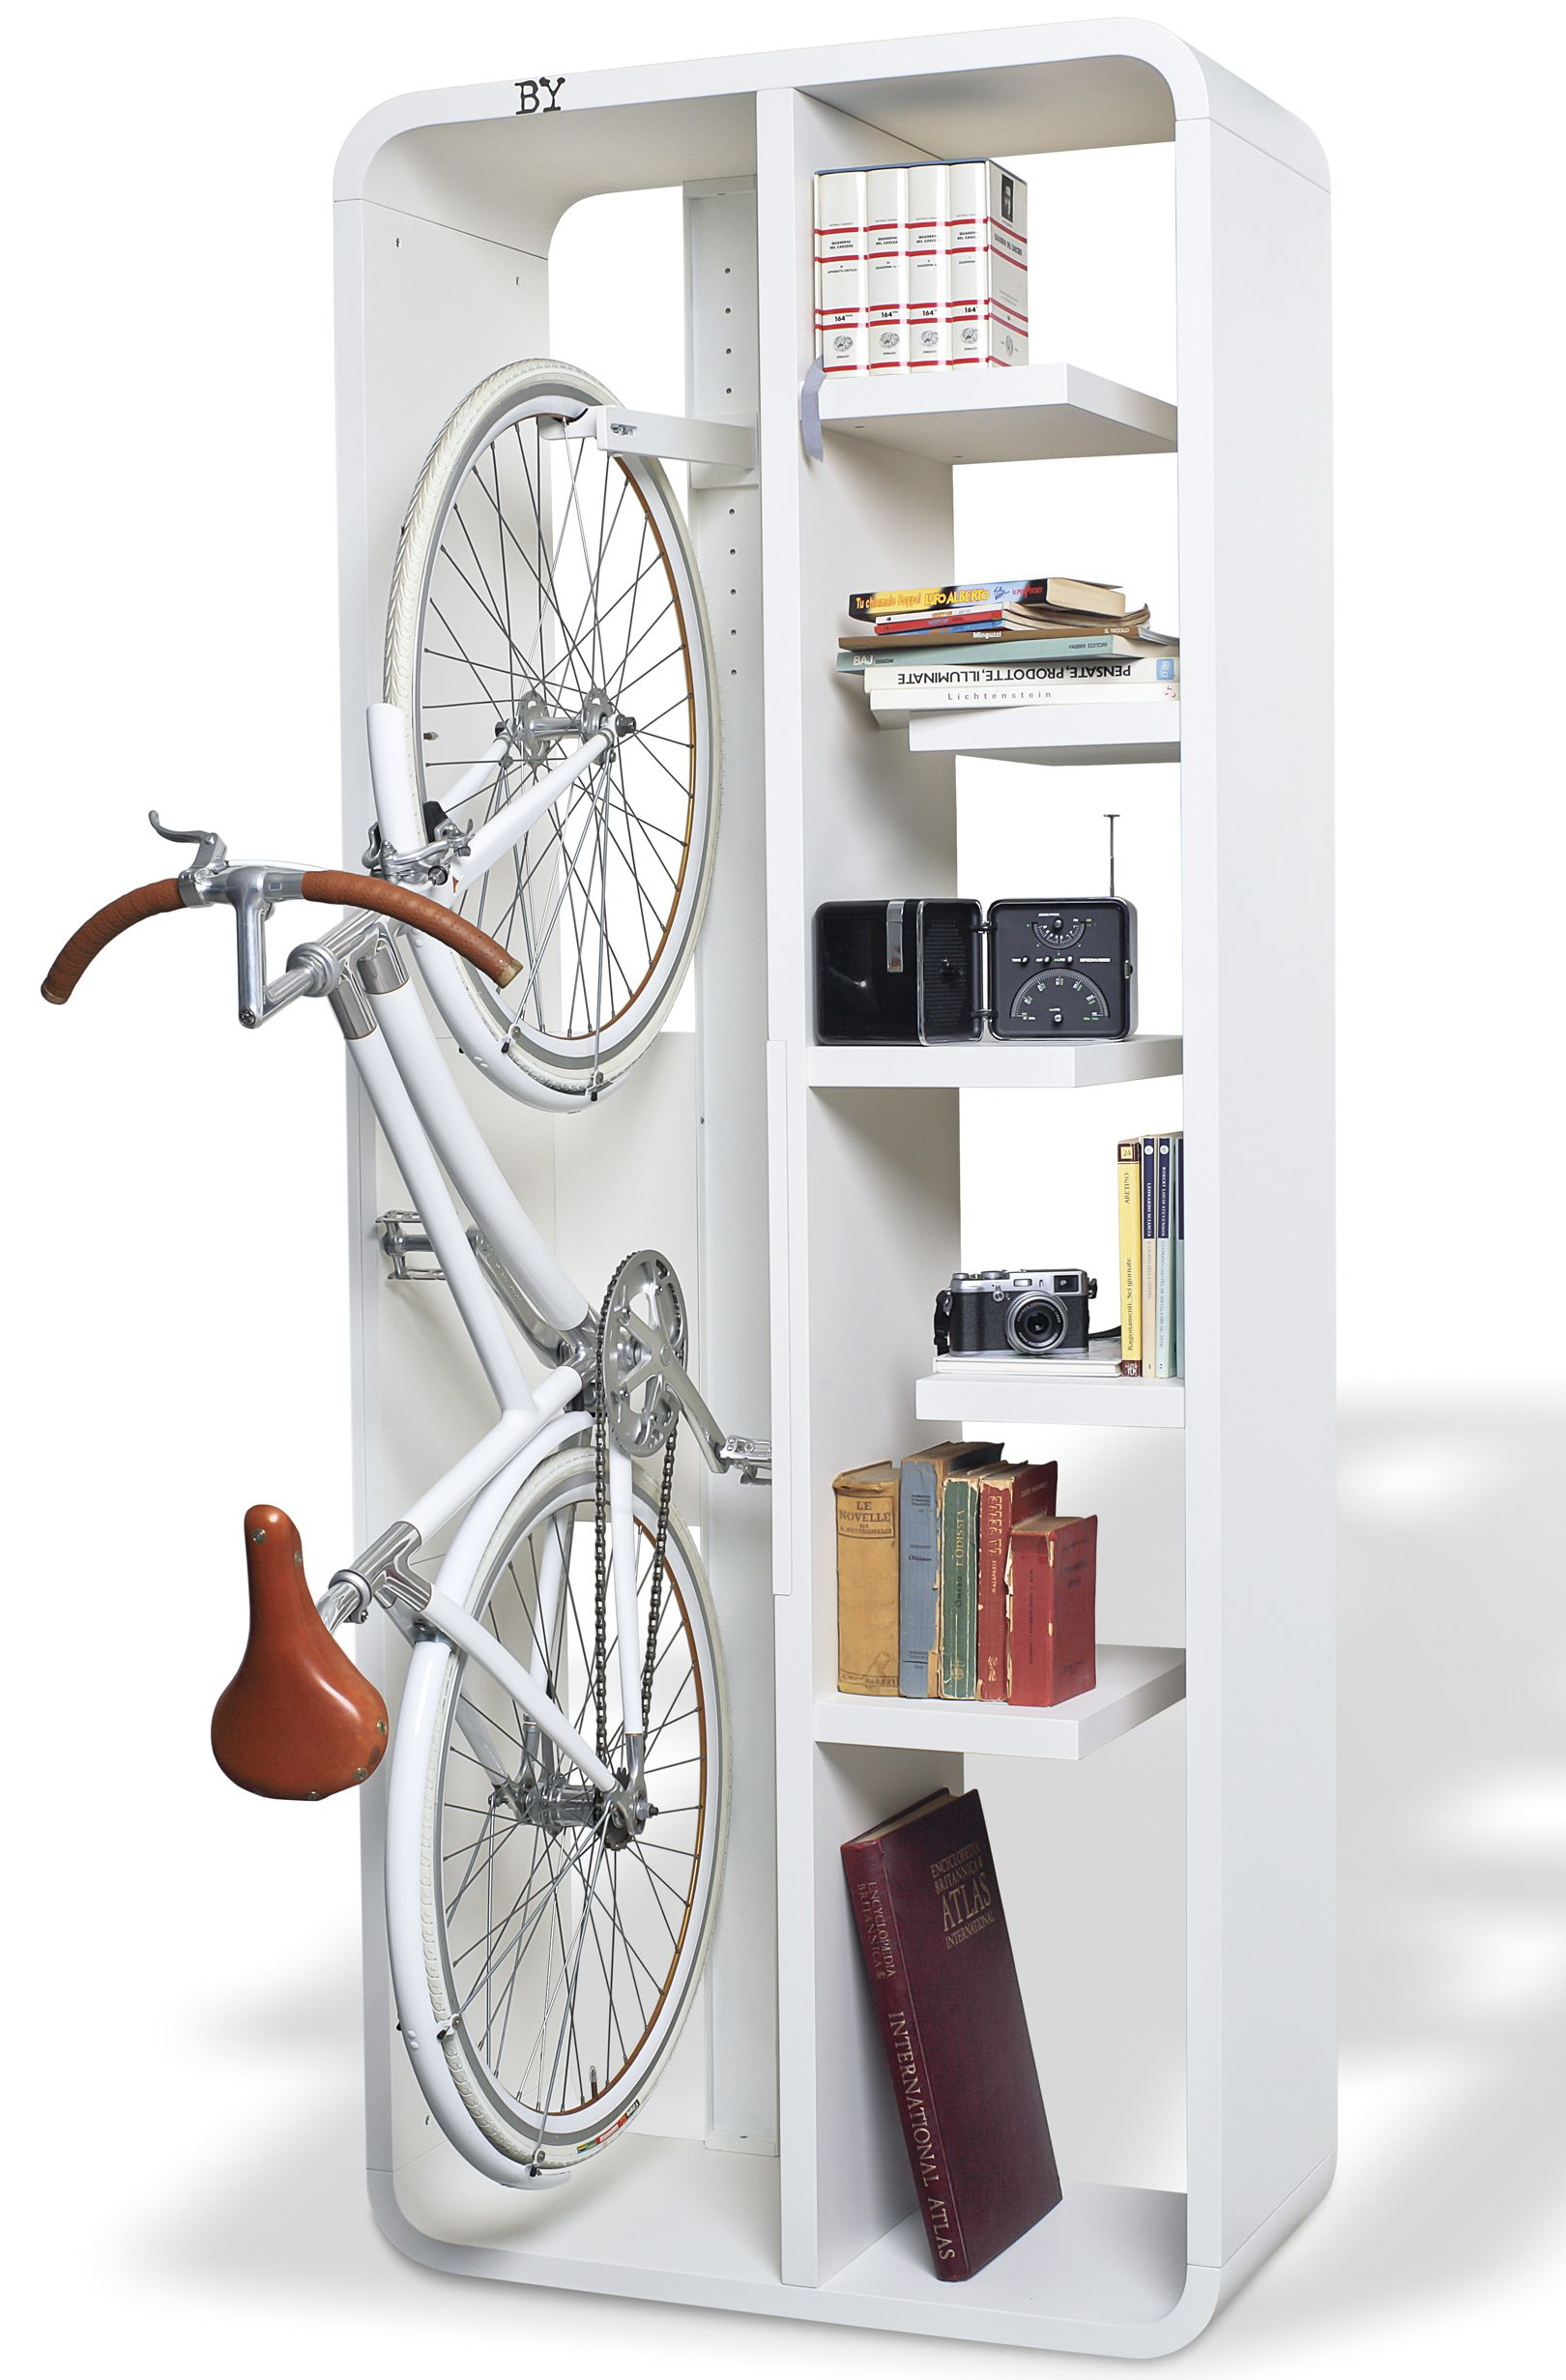 Cool Bike Storage Ideas Bicycle Carriers Hitch Bike Rack Storage Stands Bike  Storage Ideas Ideas Photo Room Design Combine Hanging Wall Indoor Garage ...